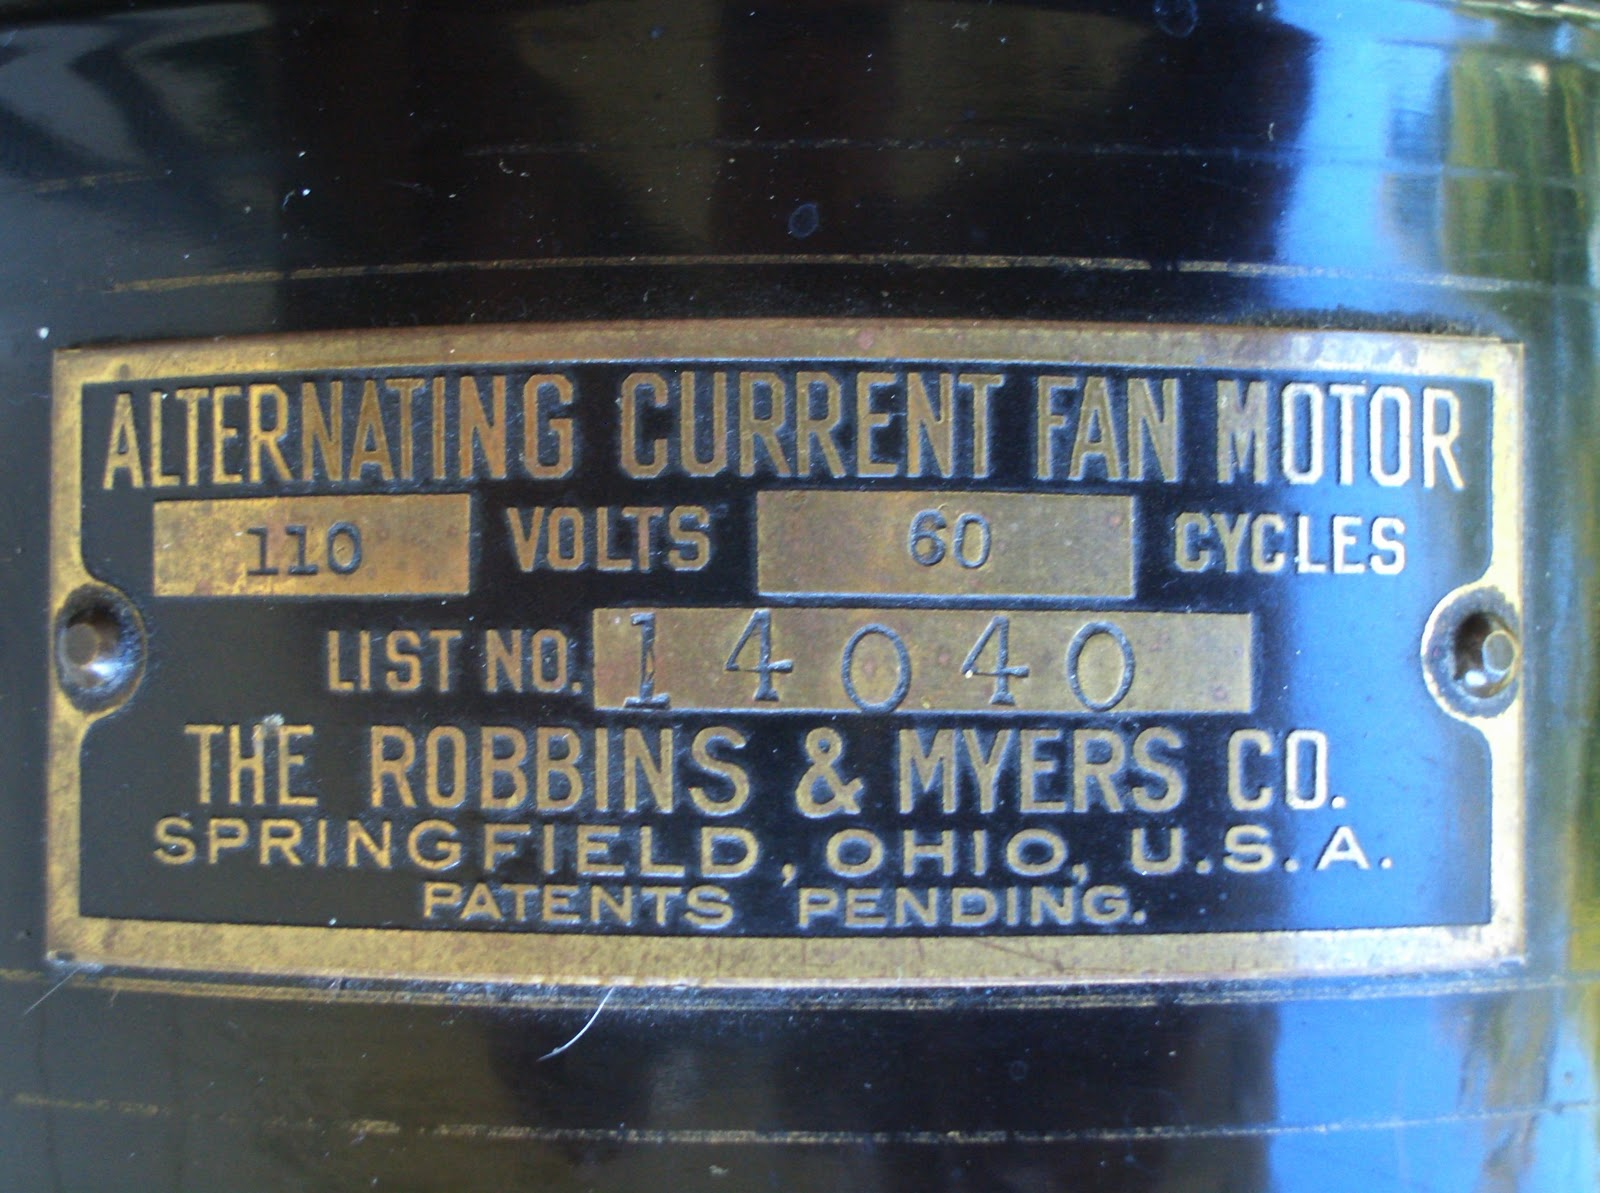 CIMG5051 early electric fans robbins & myers list 1404 desk fans, 1911 1915 robbins and myers fan motor wiring diagram at crackthecode.co